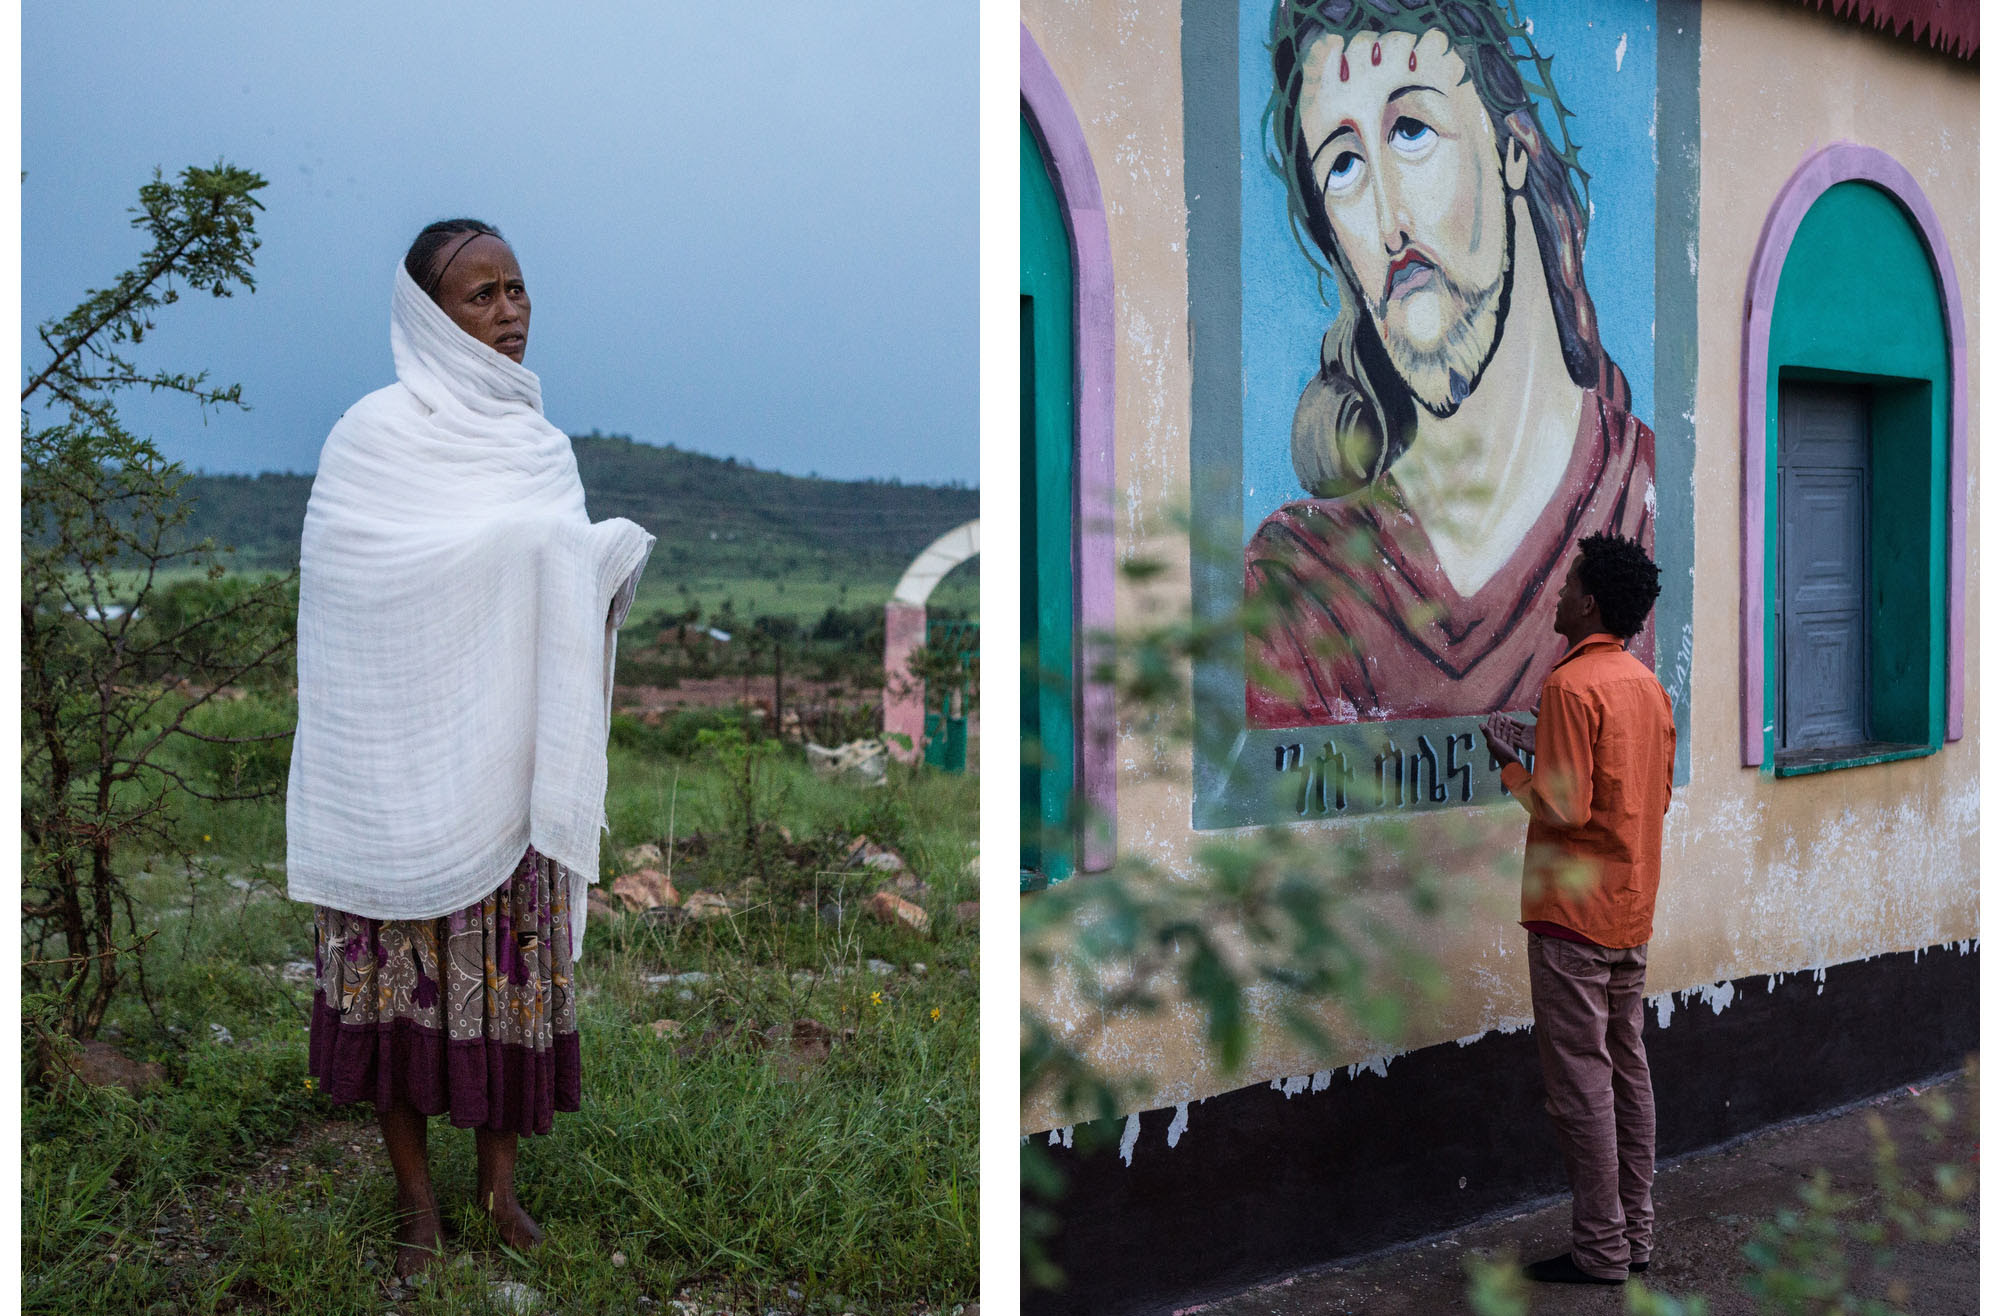 An Eritrean woman, left, and a man pray at dawn beside an Orthodox Church at Adi-Harush refugee camp in Ethiopia. The man, 25-year-old Shewit Hadera, arrived after an earlier attempt to flee Eritrea landed him in jail, where he says he was tortured. Eritrea's information minister said, 'Torture is not allowed; that does not mean it may not happen here and there.'